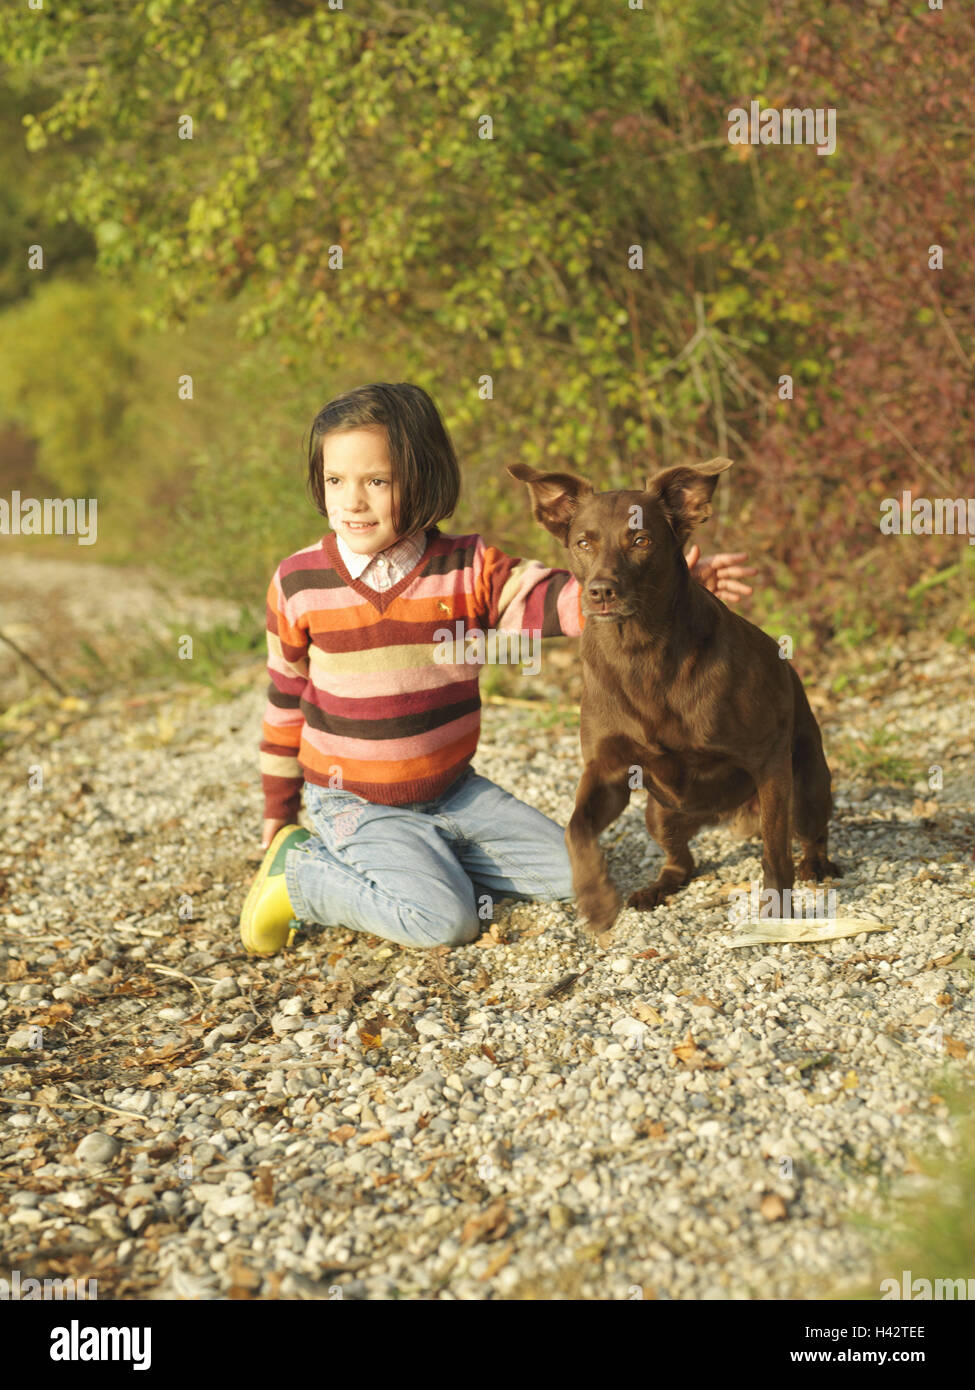 Child, girl, kneel, play dog, happy, autumn, garden, wood, edge the forest, leisure time, holidays, autumn holidays, - Stock Image